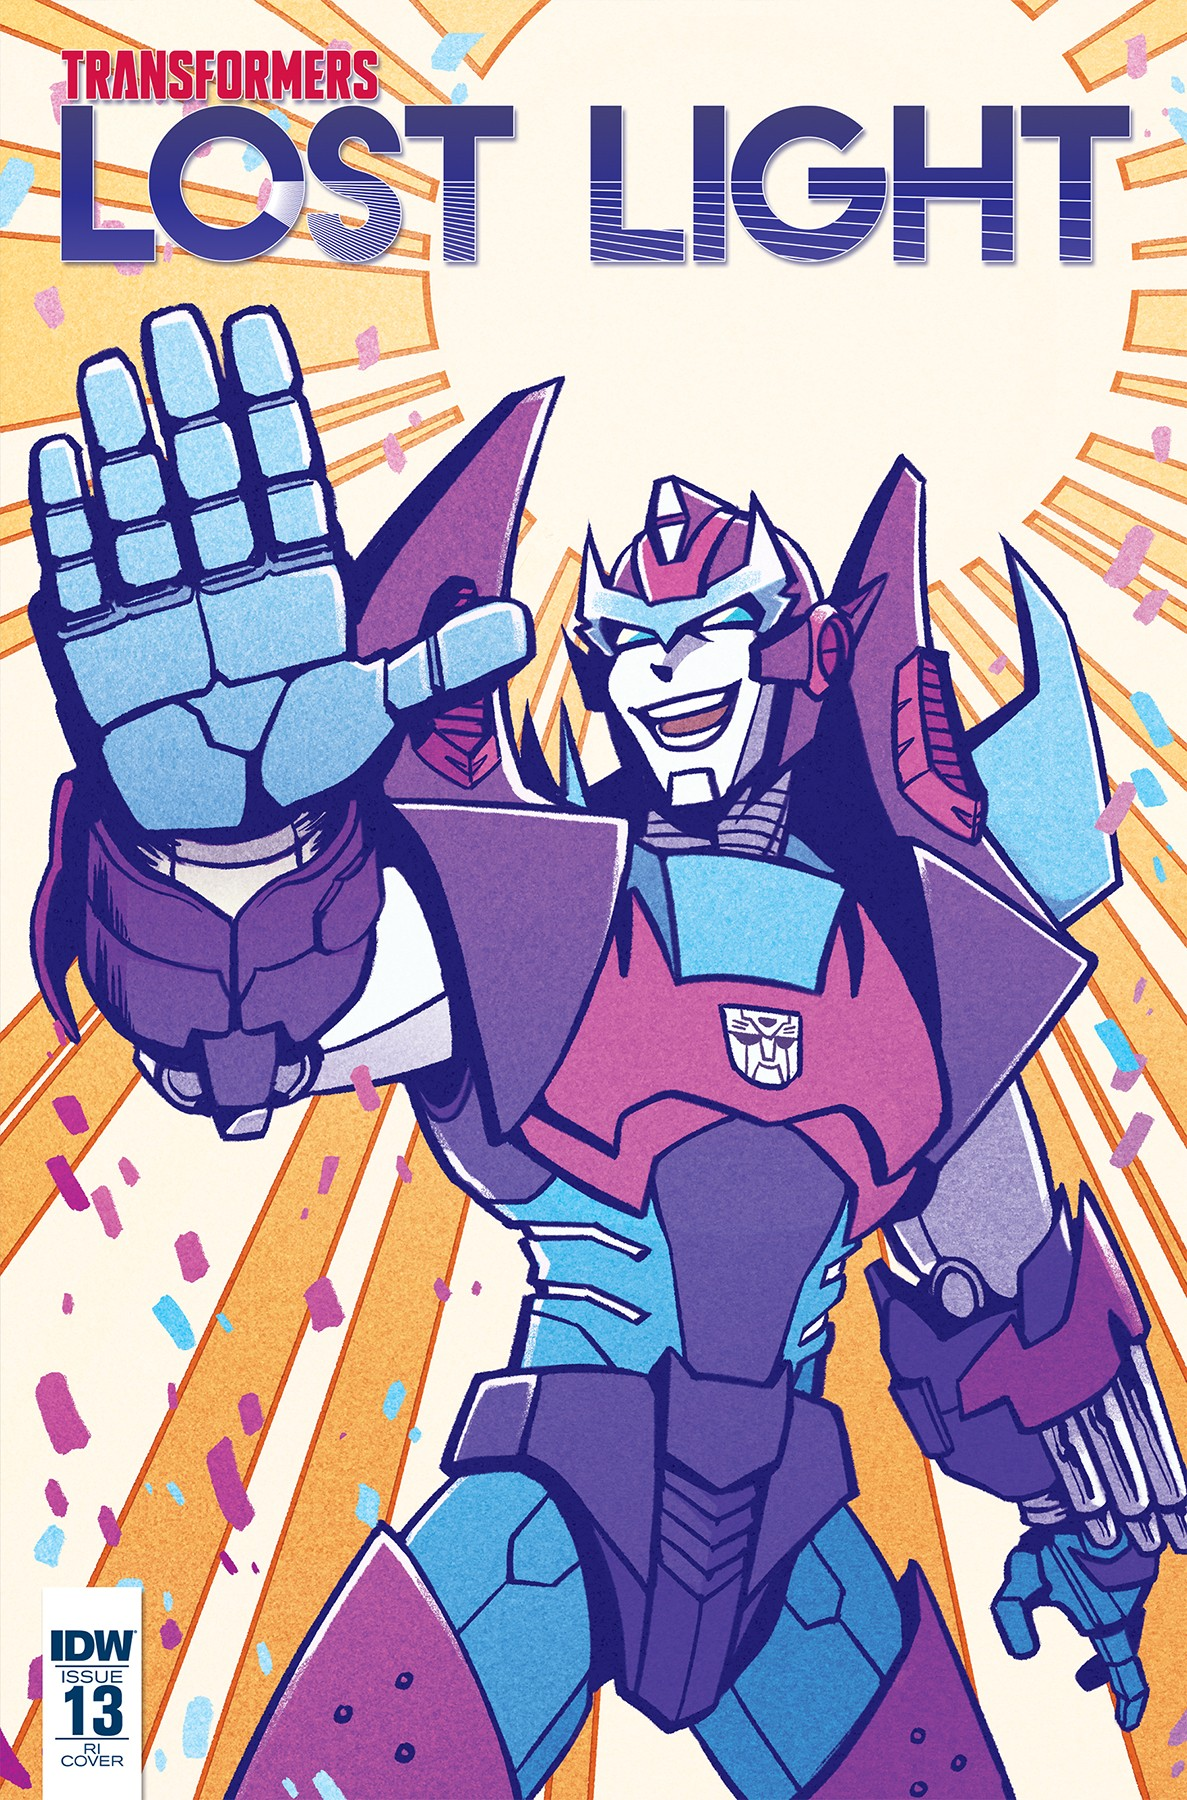 Transformers News: IDW December 2017 Solicitations